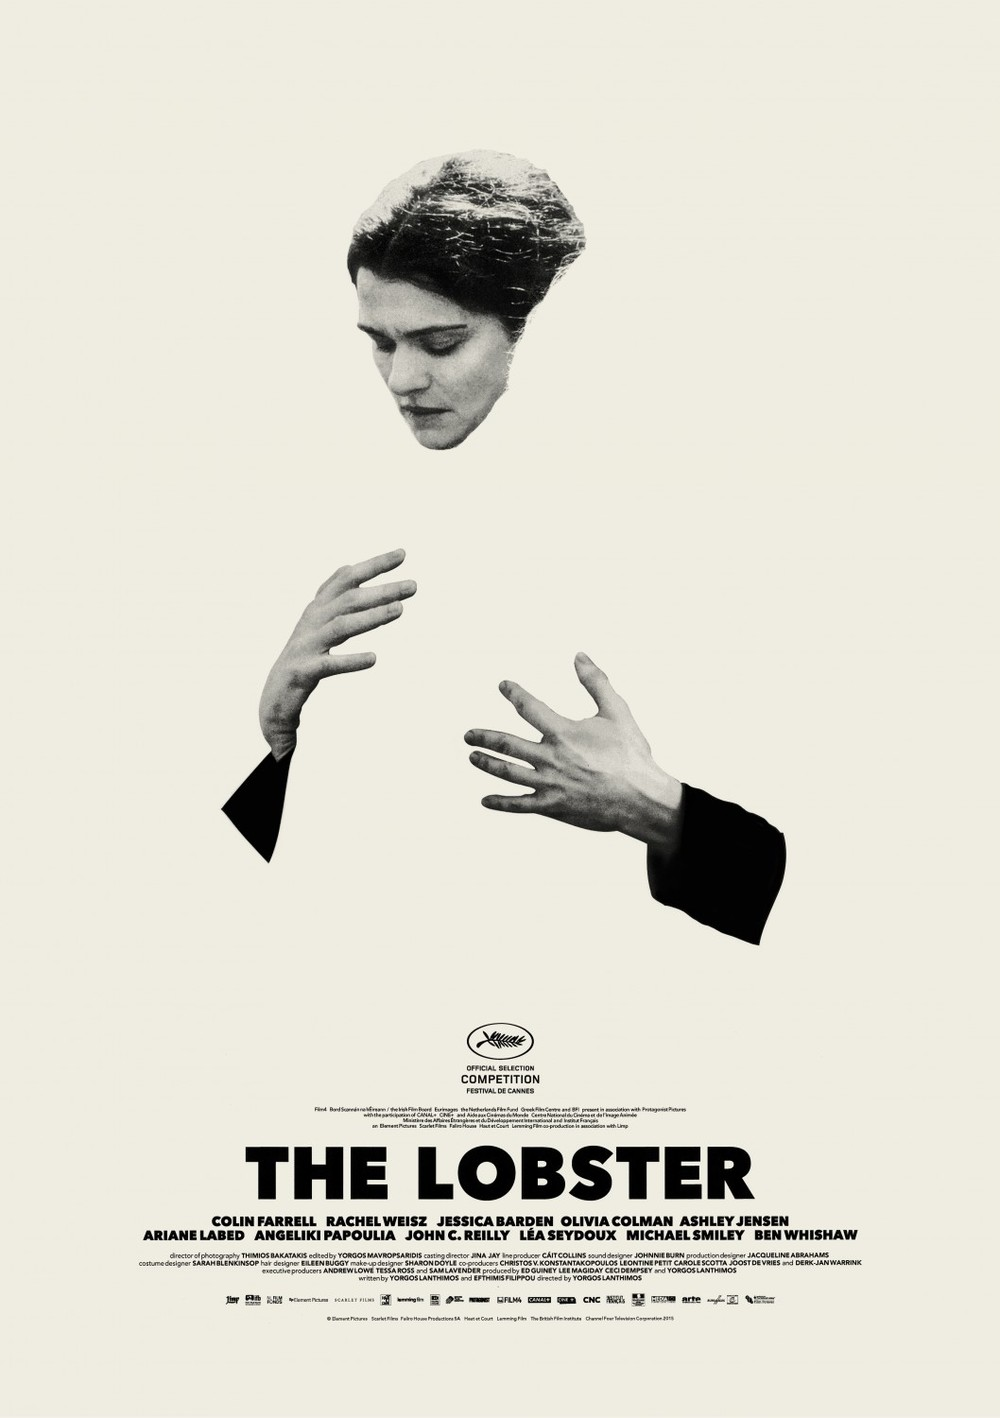 I absolutely adore all three posters for The Lobster. This and its companion are beautifully-conceived and executed, saying so much and saying it interestingly. The third one is different, but gorgeous in its own way.